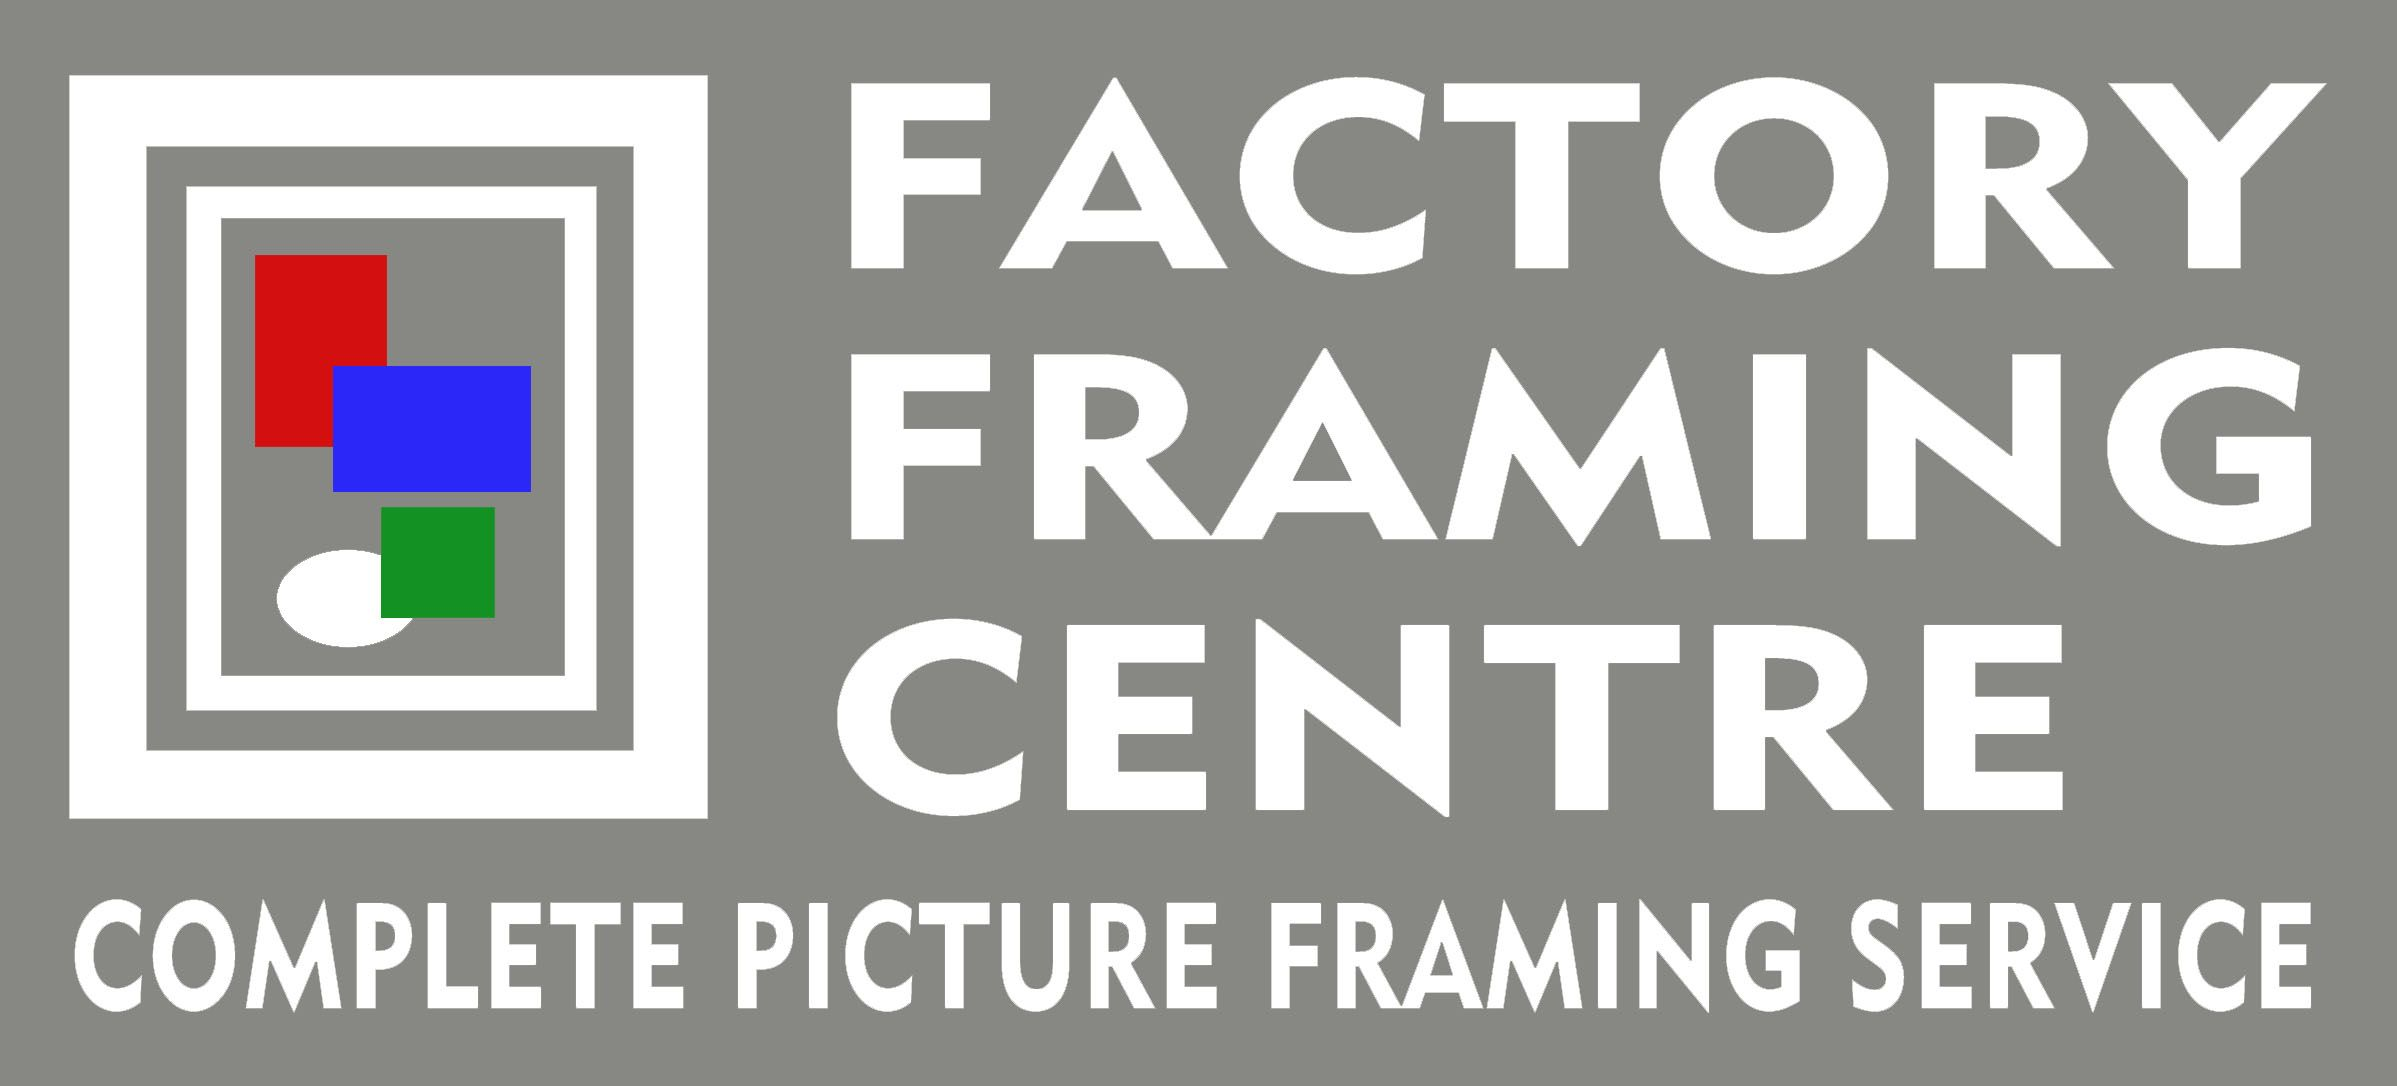 Factory Framing Centre Ltd